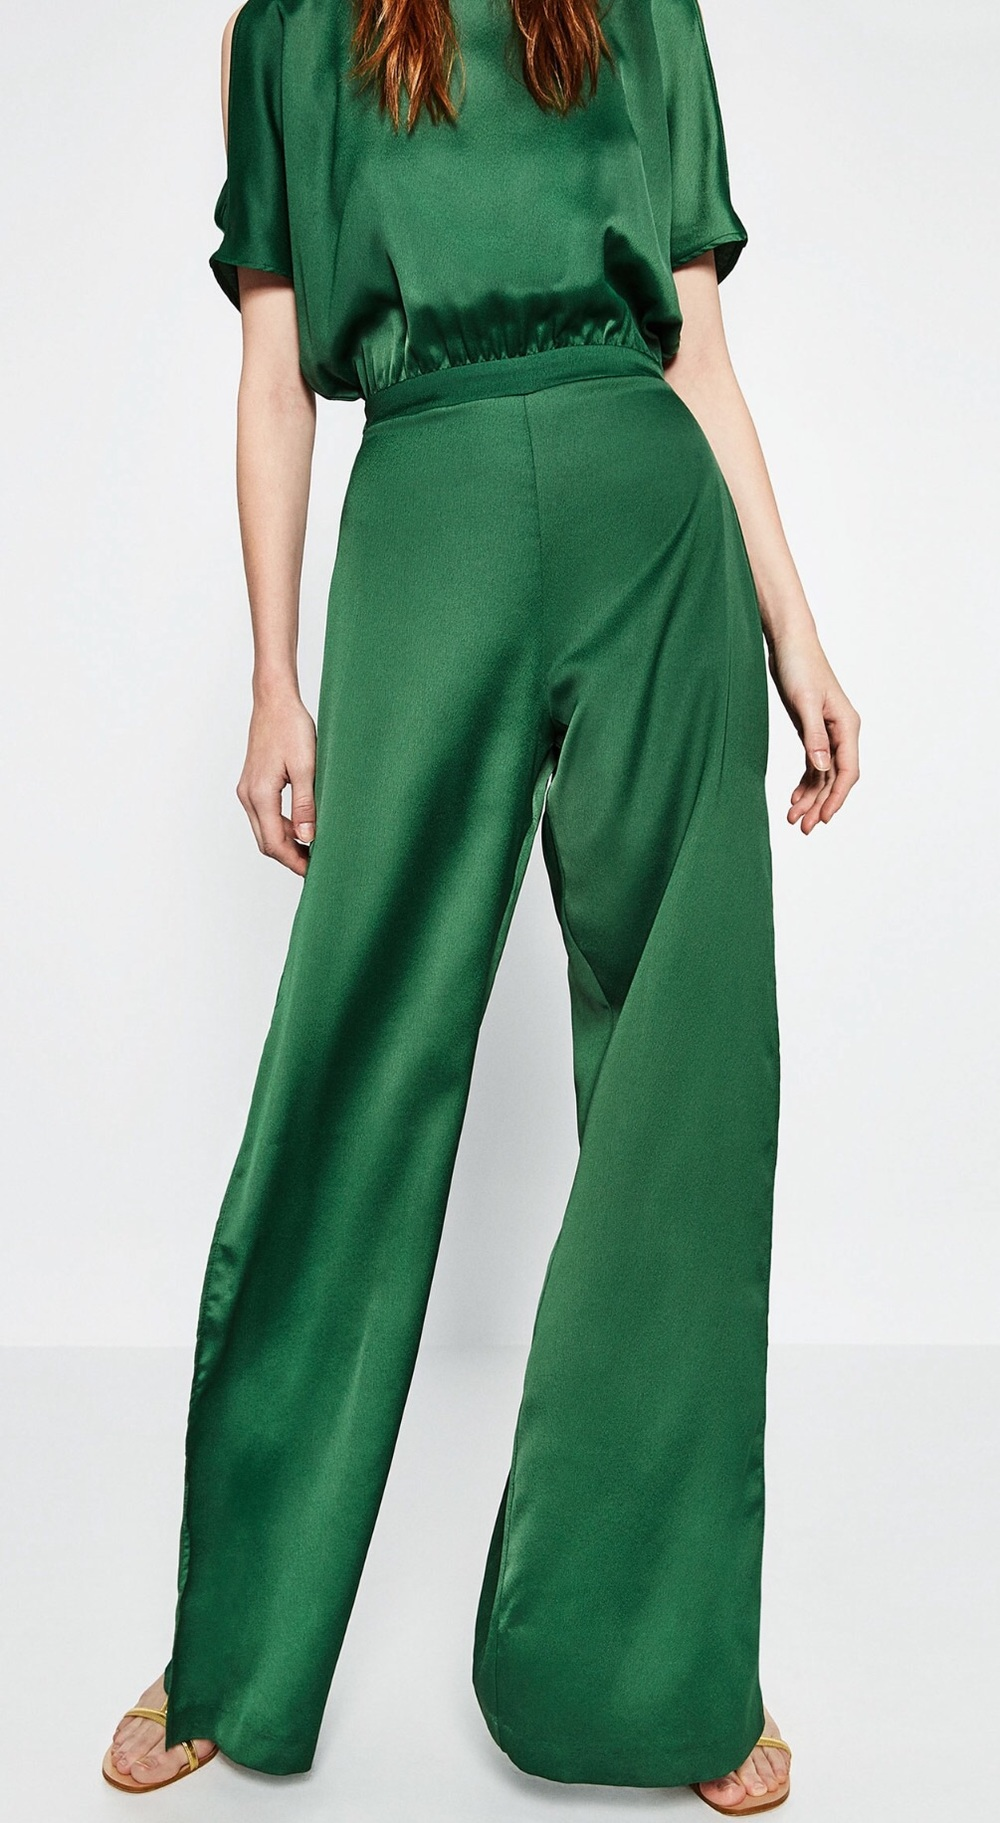 Green Jumpsuit from Zara 649 Dkk